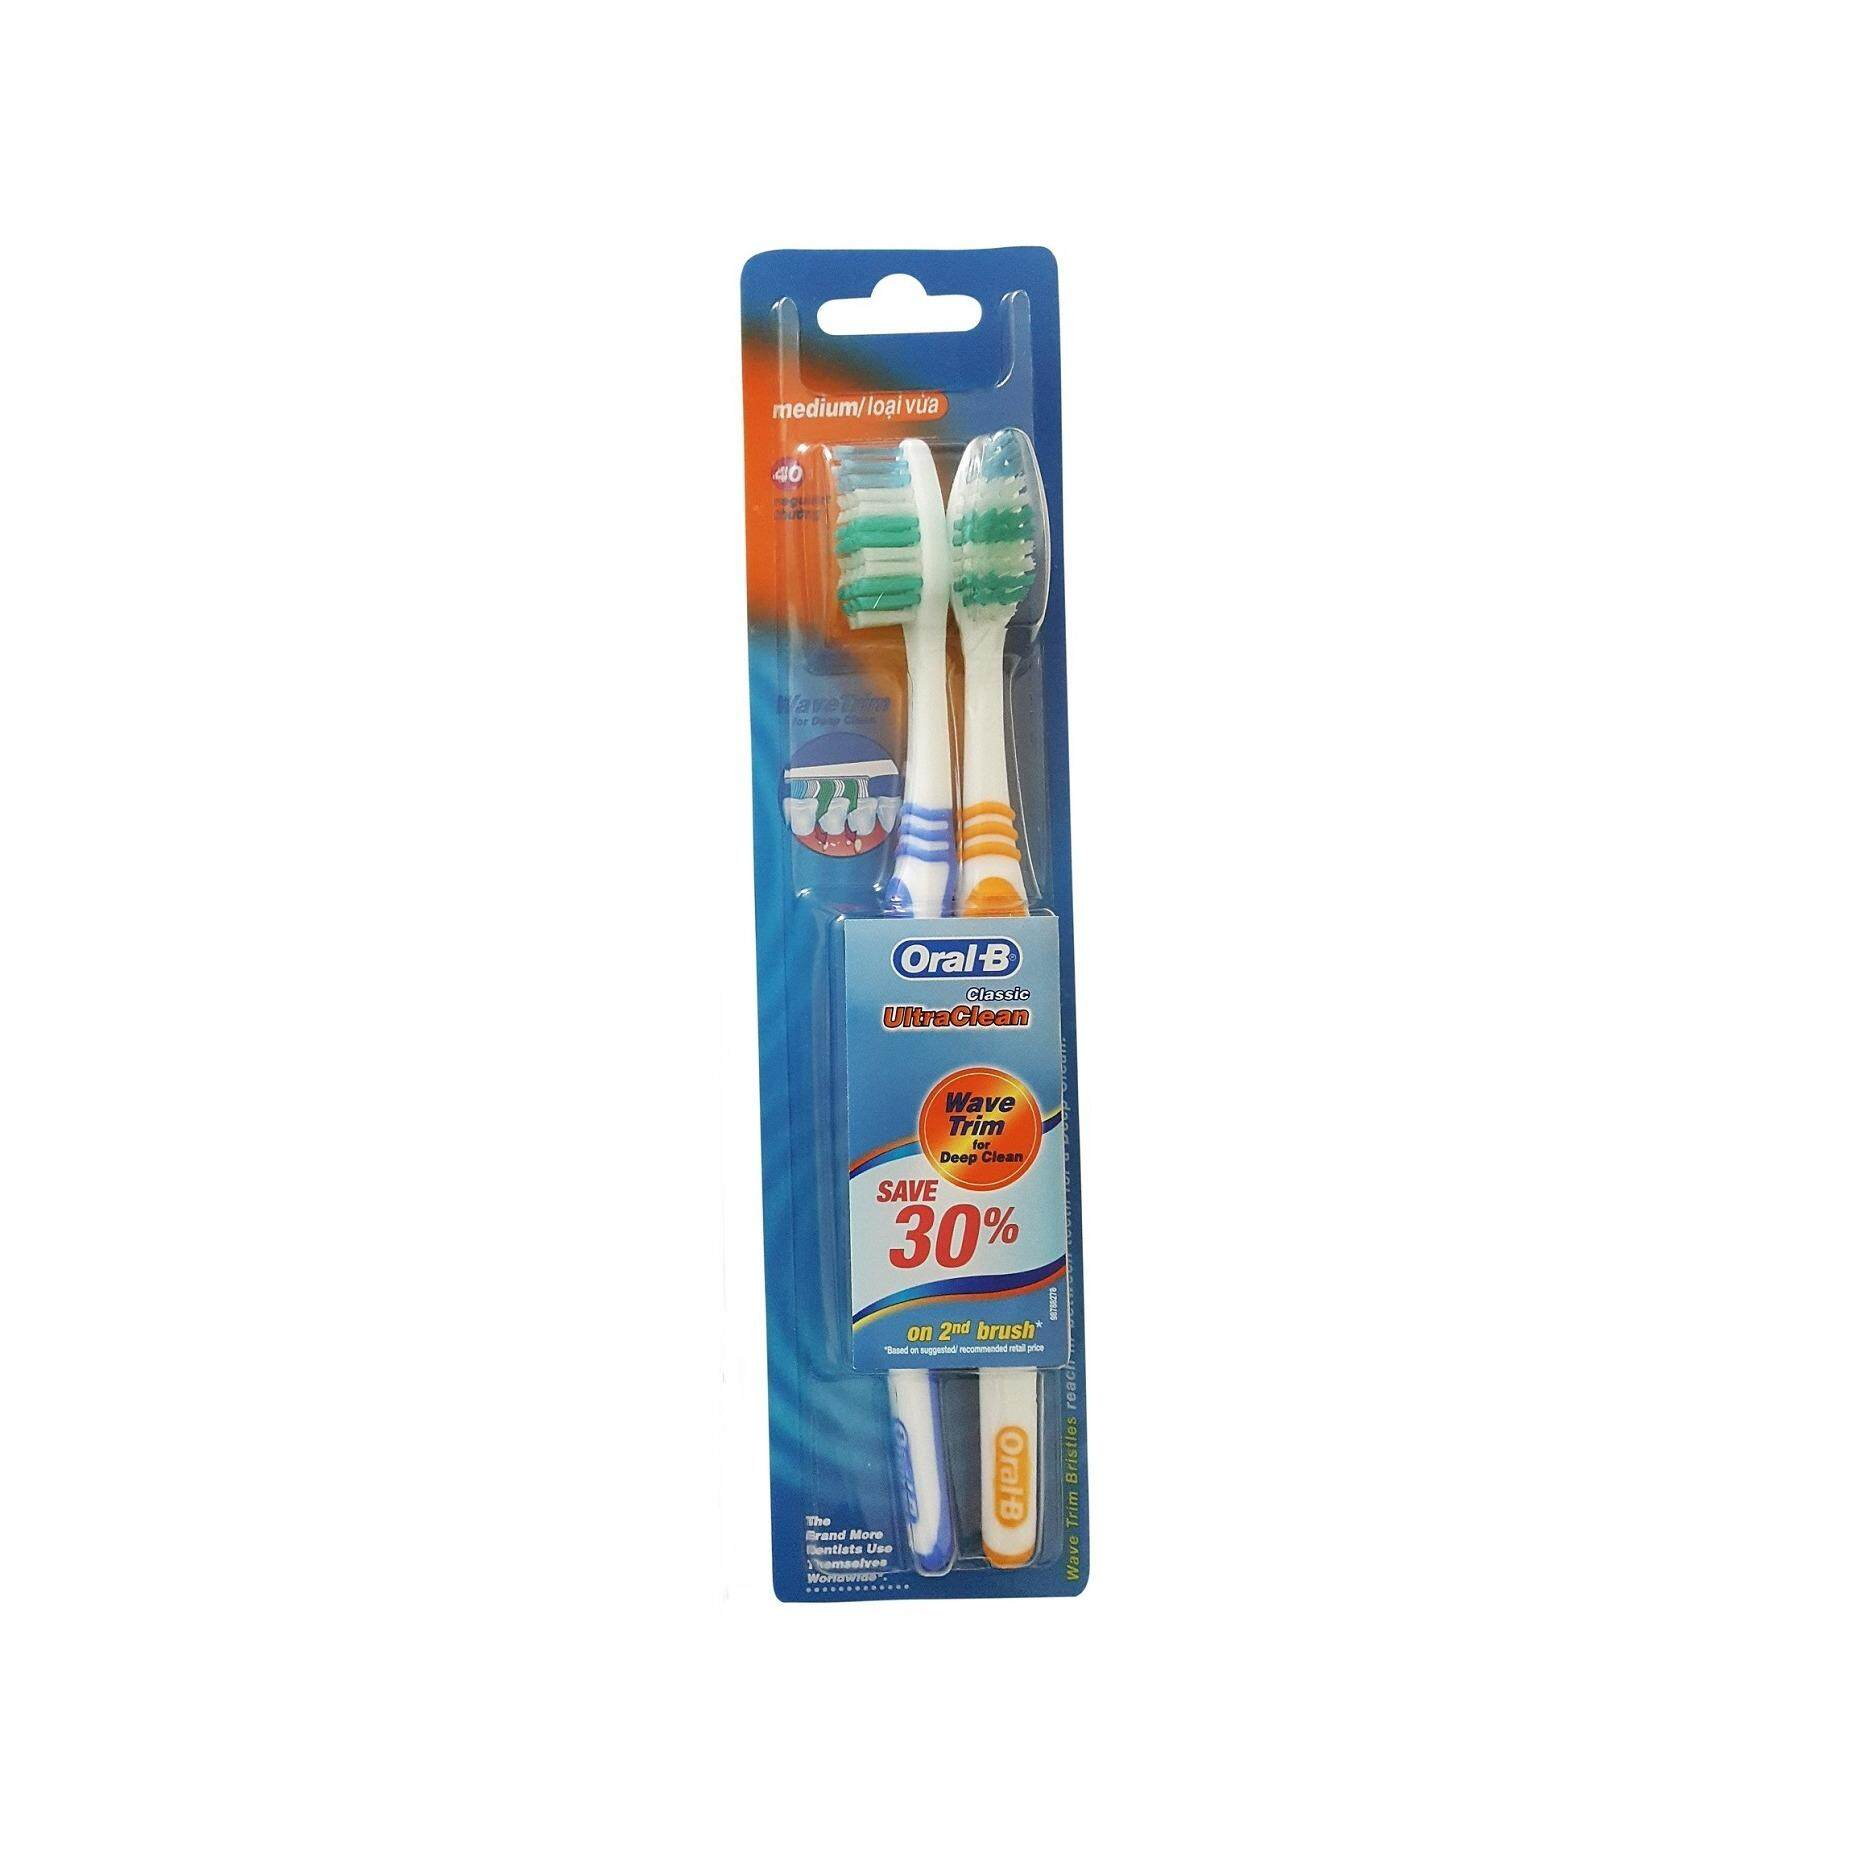 Sell tesco toothbrush classic cheapest best quality | My Store